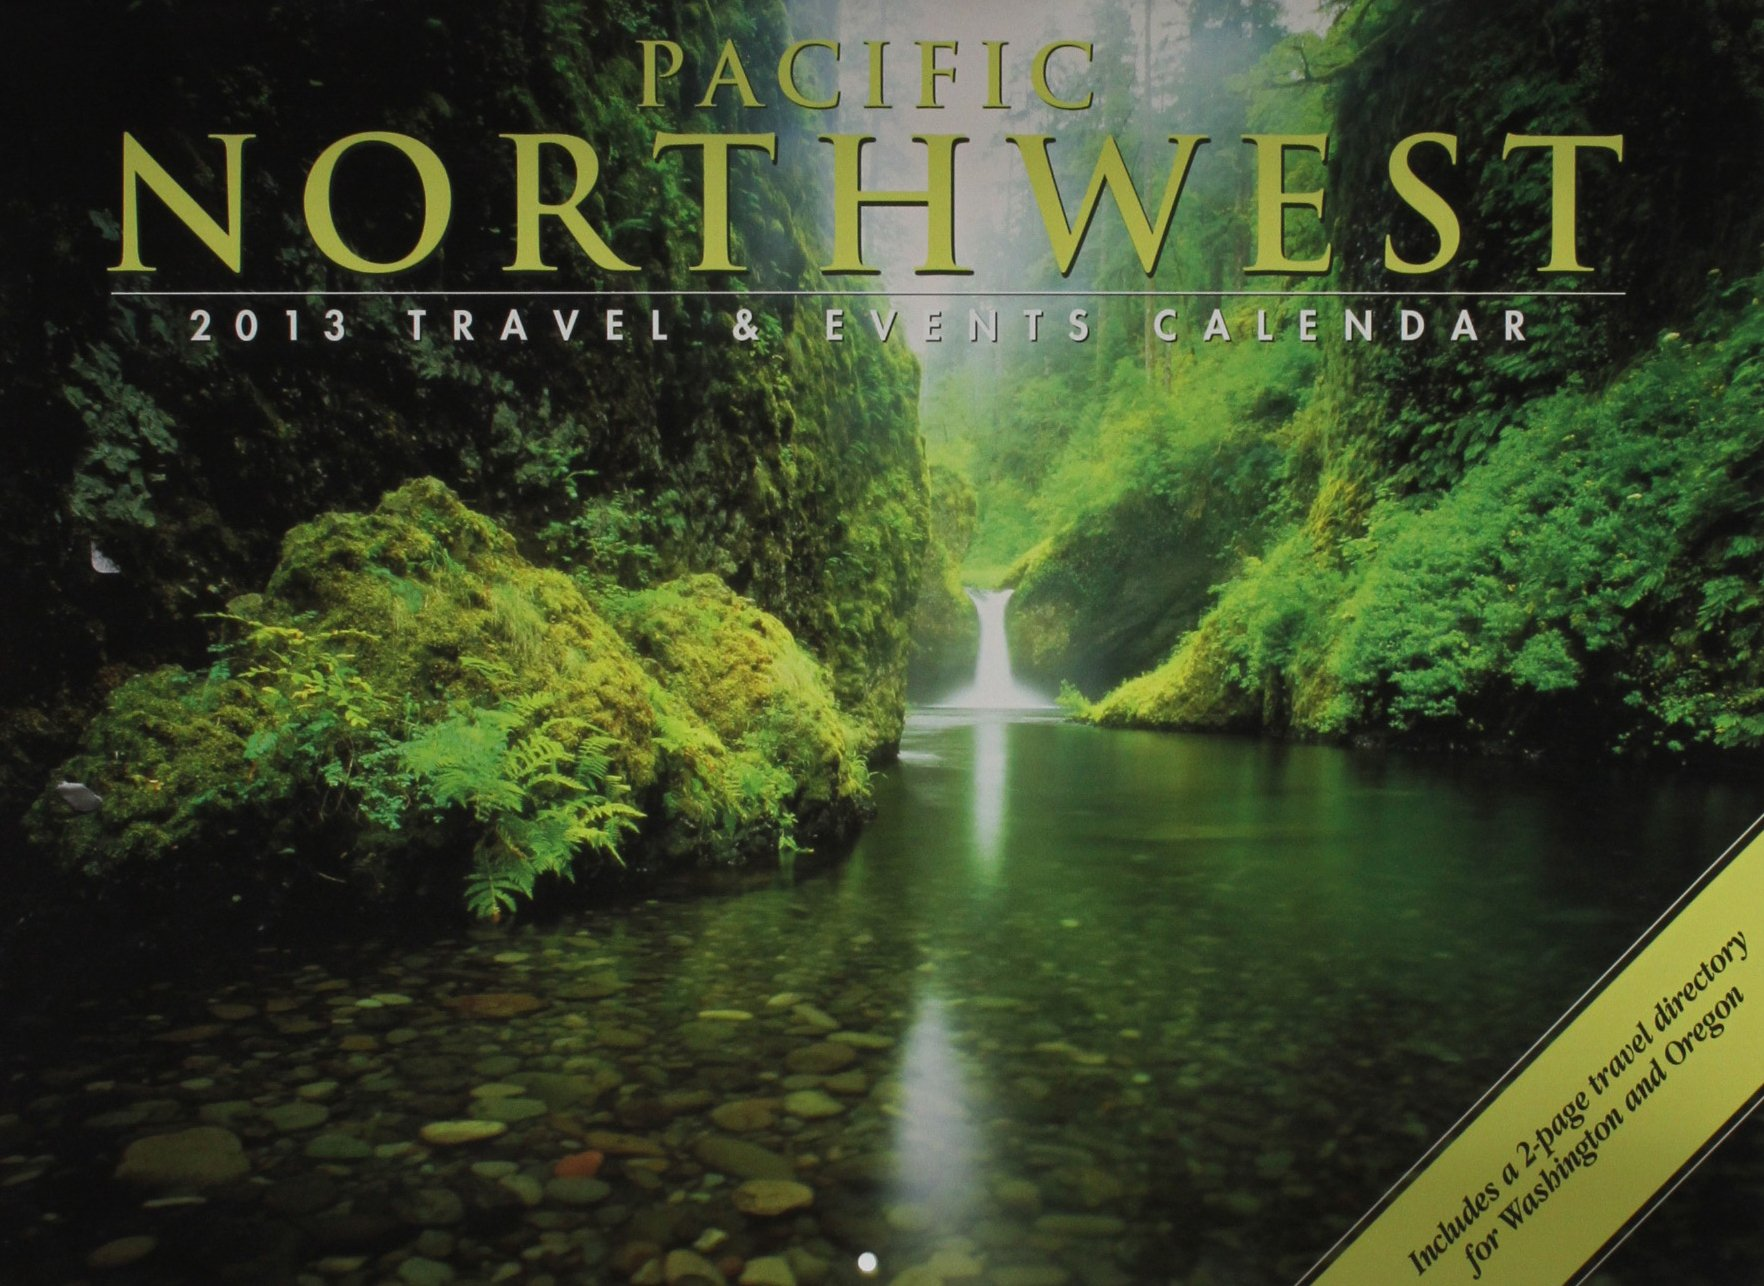 Download Pacific Northwest Travel & Events 2013 Calendar PDF